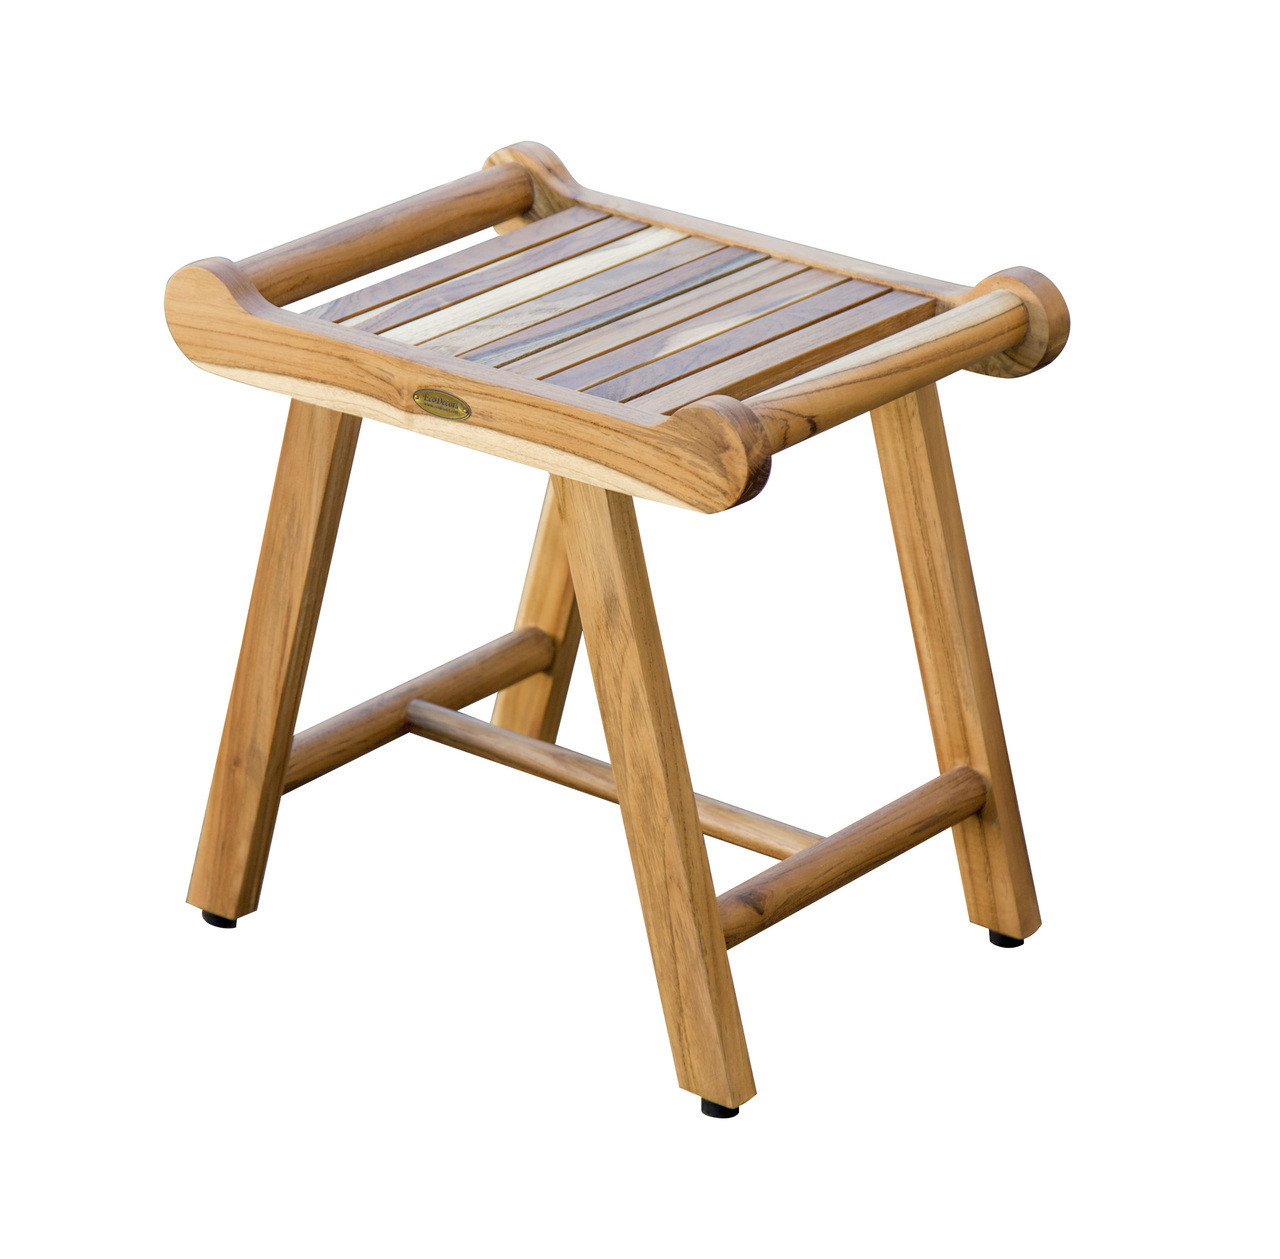 Ecodecors Sensiharmony 20 Inch Teak Shower Stool Bench With Liftaide Arms